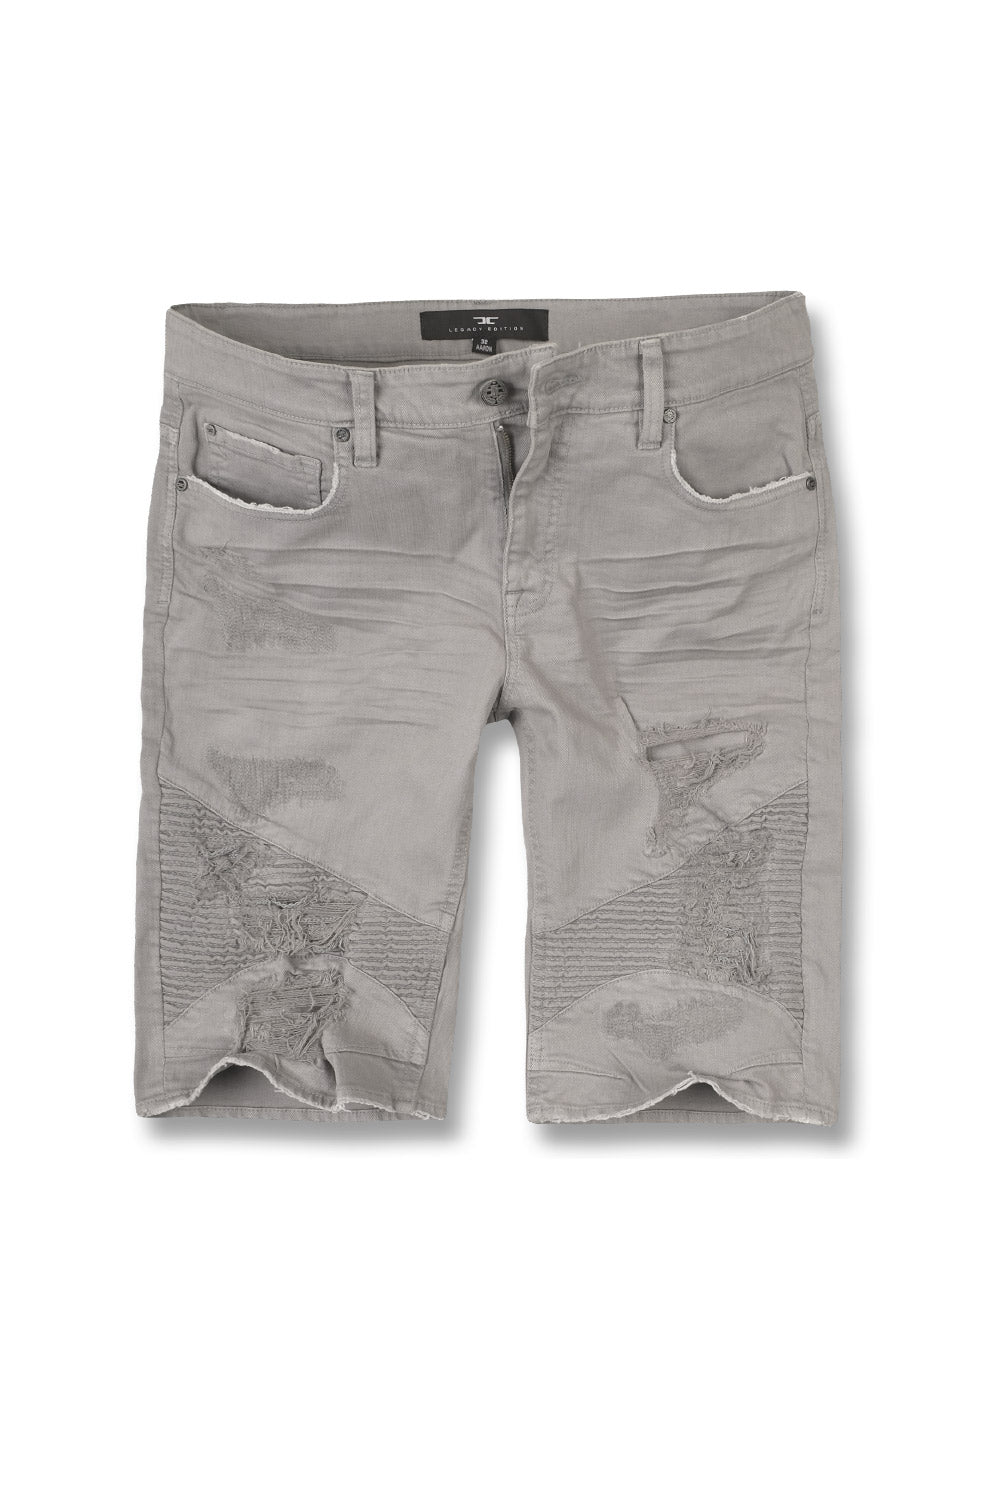 Jordan Craig - Kids Savior Biker Shorts (Light Grey)